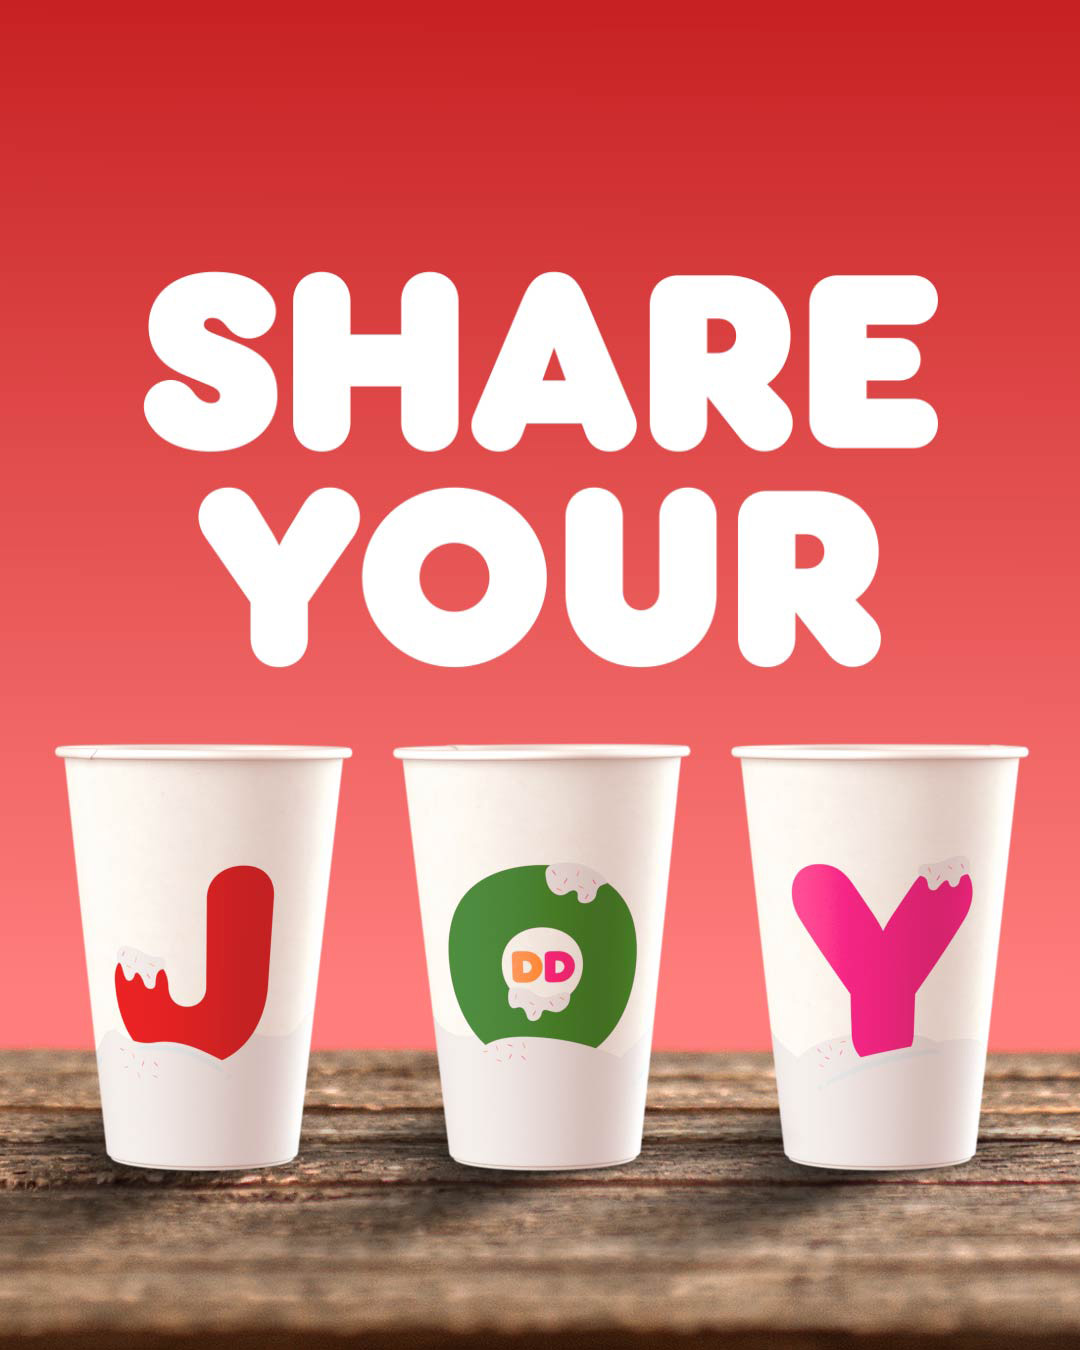 Our new 2018 JOY cups